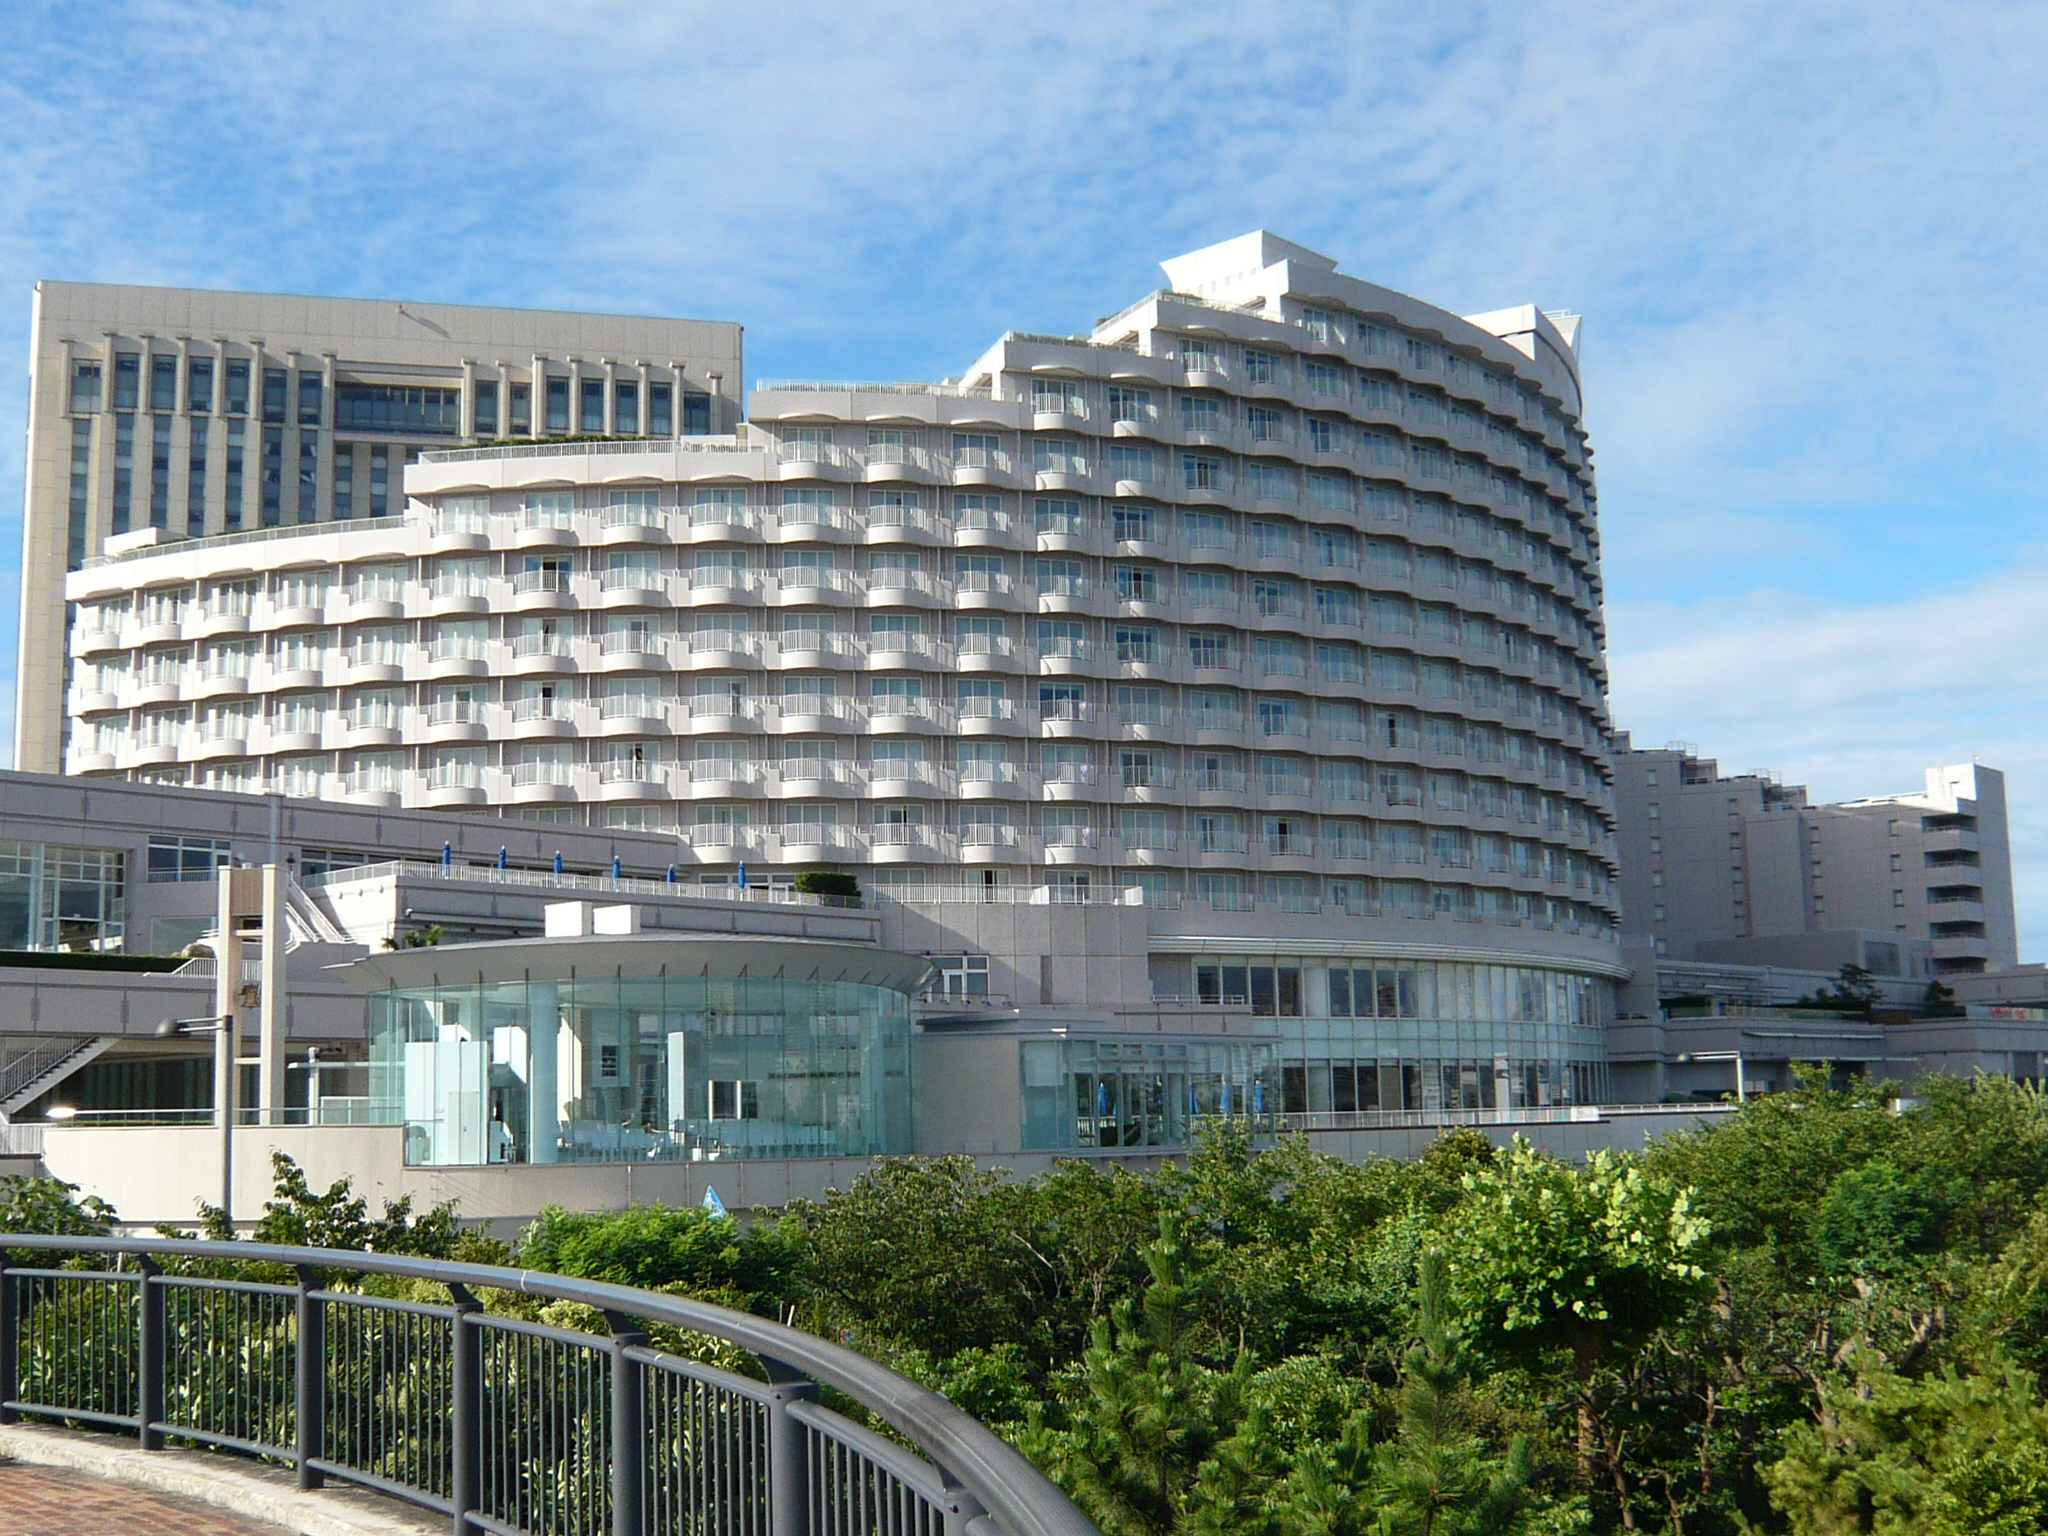 large circular multi-story building with stepped upper levels, facade consisting of multiple rows of balconies; foreground is a tree-lined park area, with a curved walkway railing, and additional buildings behind